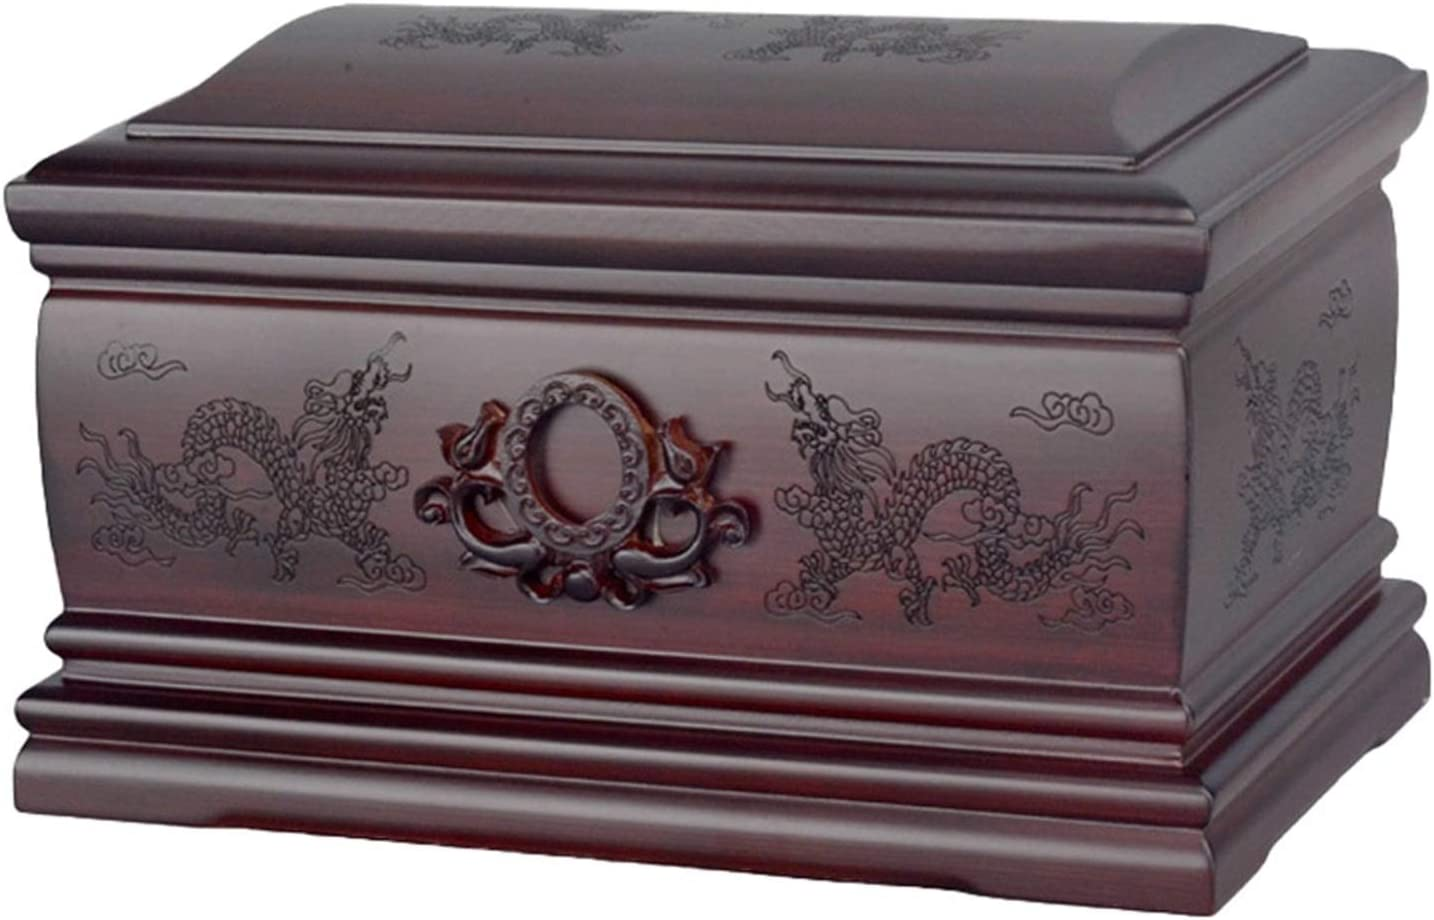 BDBT Hand Carved Urn Urns for Ur Ashes Human Max quality assurance 72% OFF Cremation Rosewood